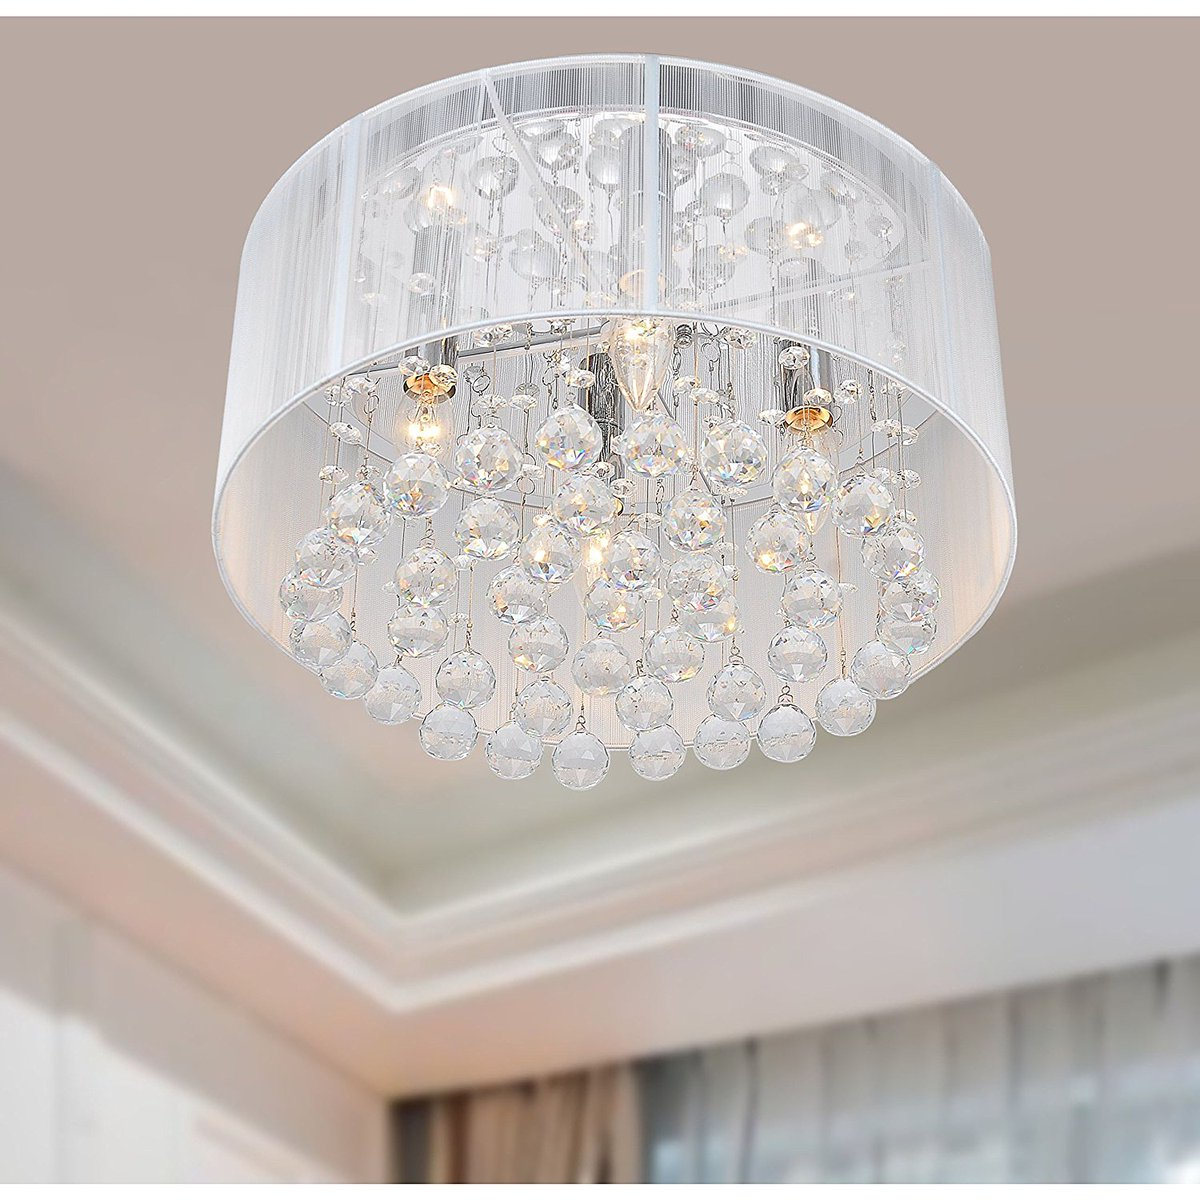 Astonishing Chandelier Lyrics Tagalog Photos - Chandelier Designs ...